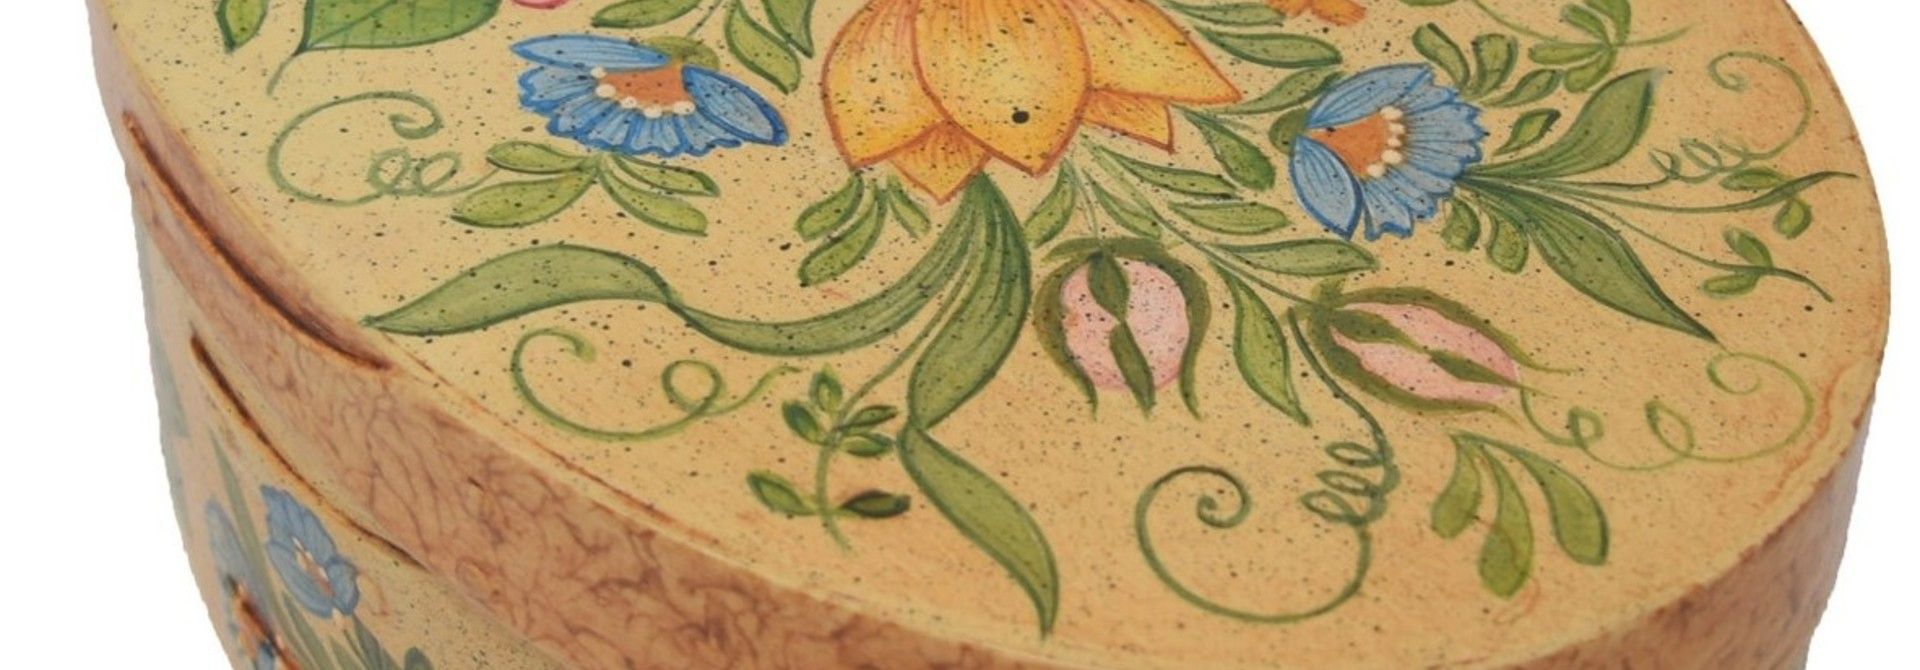 Oval Cream Box with Flowers